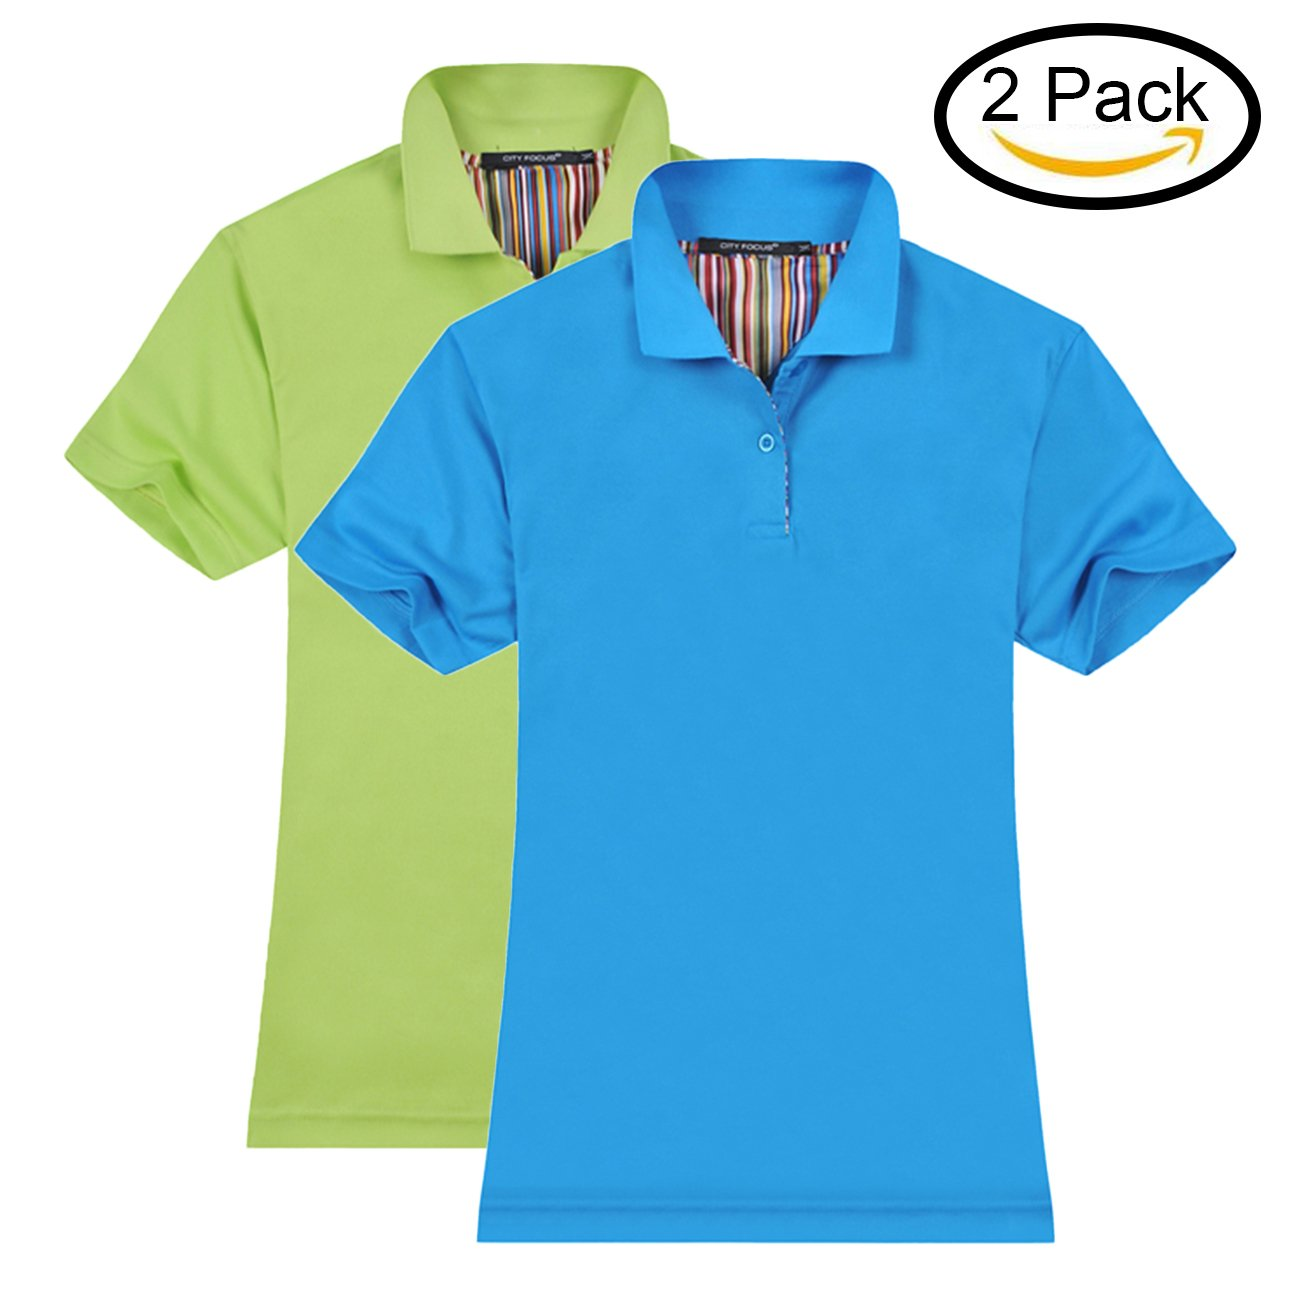 5190d129 High Quality Breathable Material Elastic closure. Features - Featuring a  fully functional popped collar with button placket and short sleeves with  plenty of ...